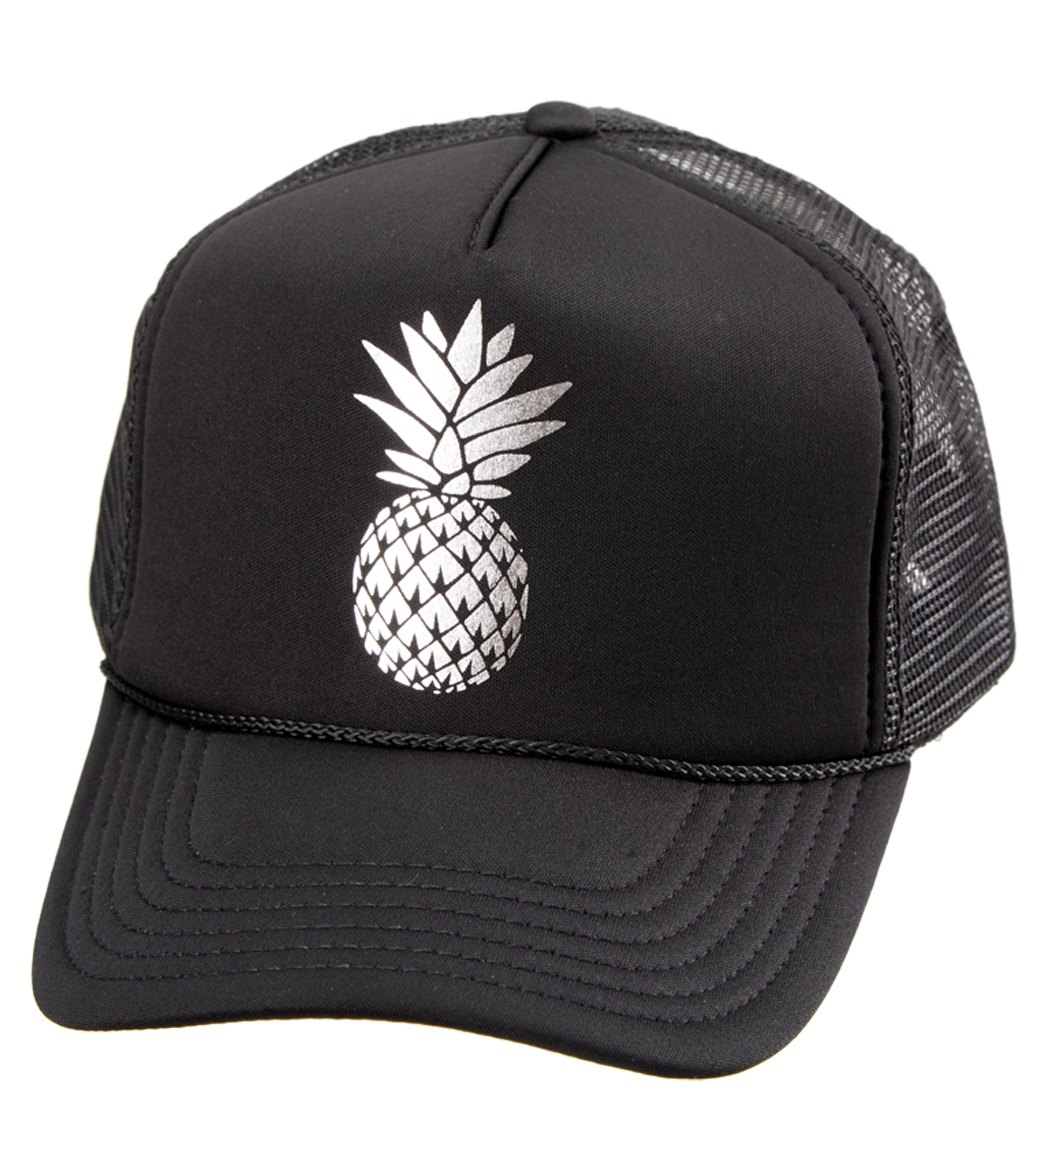 e6aa49979f9 O Neill Beach Squad Pineapple Trucker Hat at SwimOutlet.com